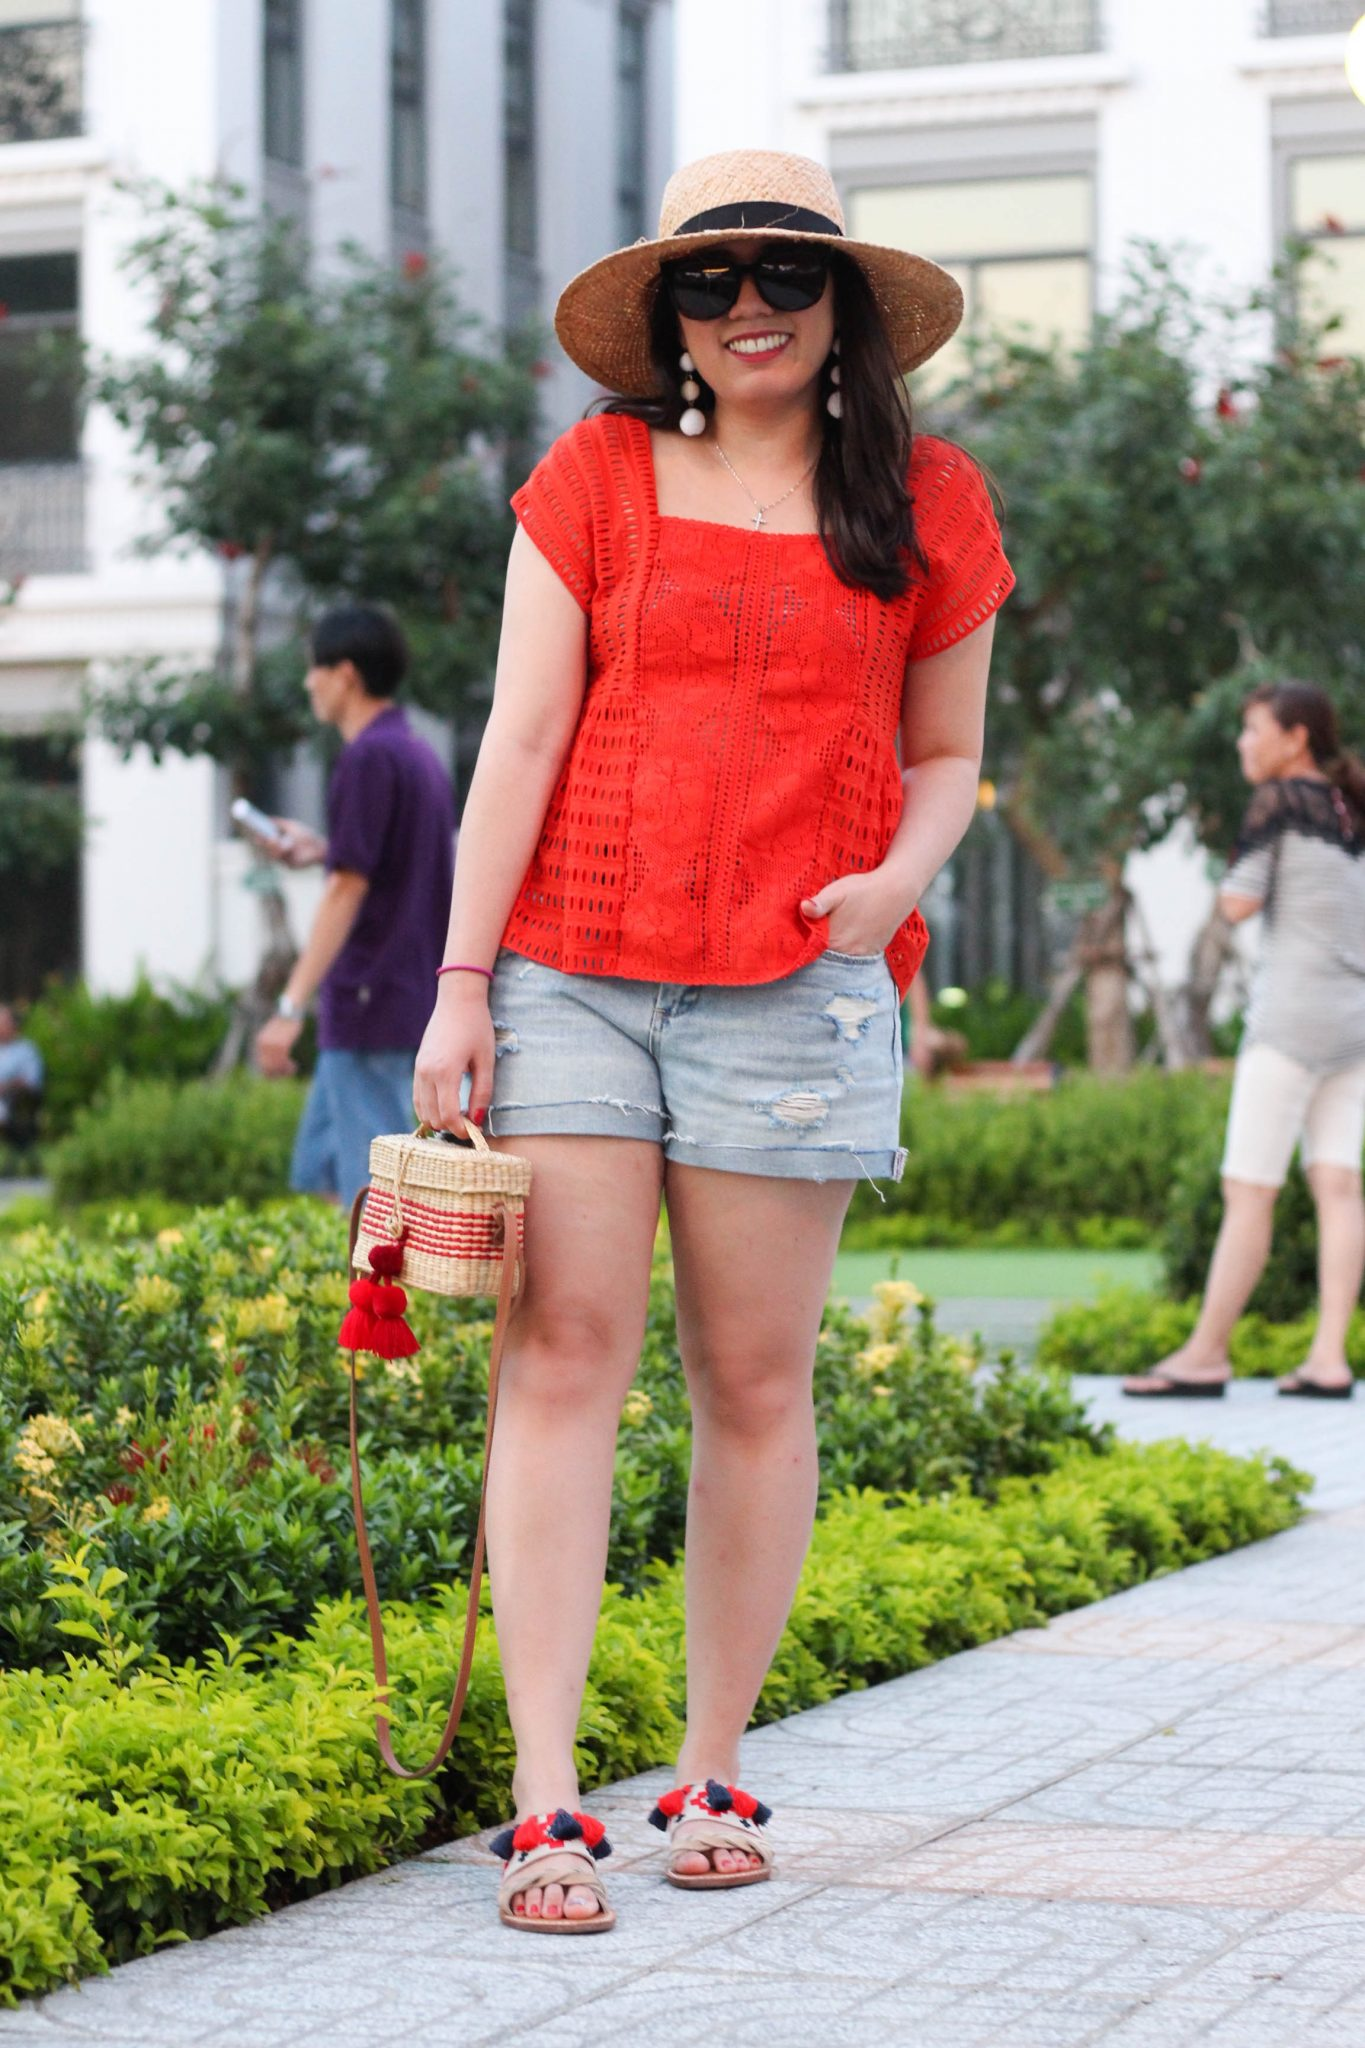 Red Hot Vietnam & My Favorite Podcasts by popular New York style blogger Live Laugh Linda